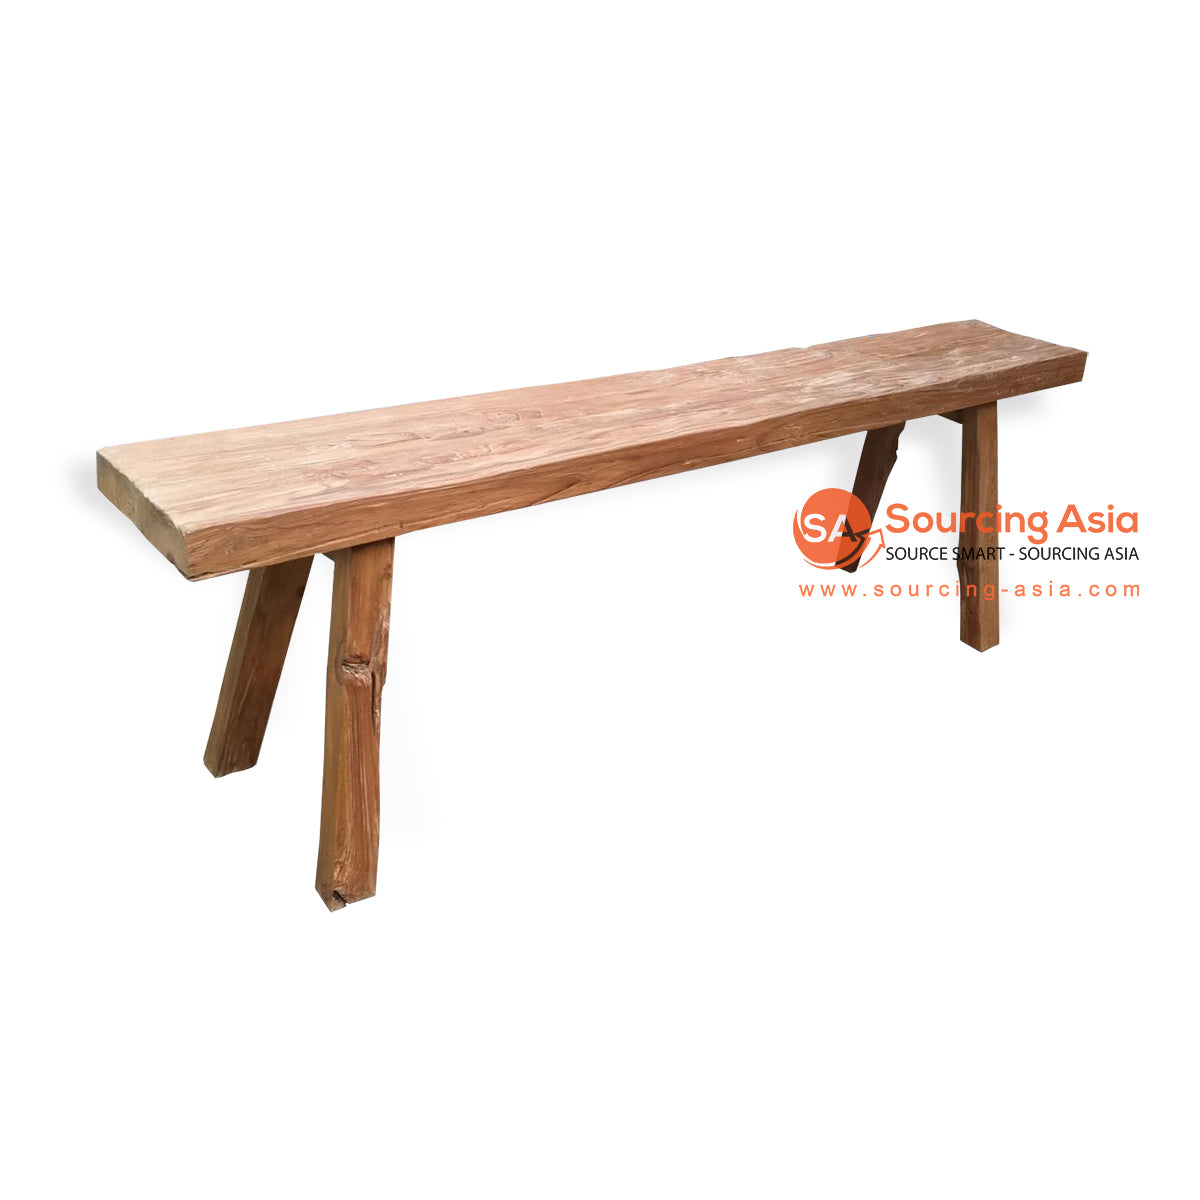 KYT158 TEAK WOOD BENCH